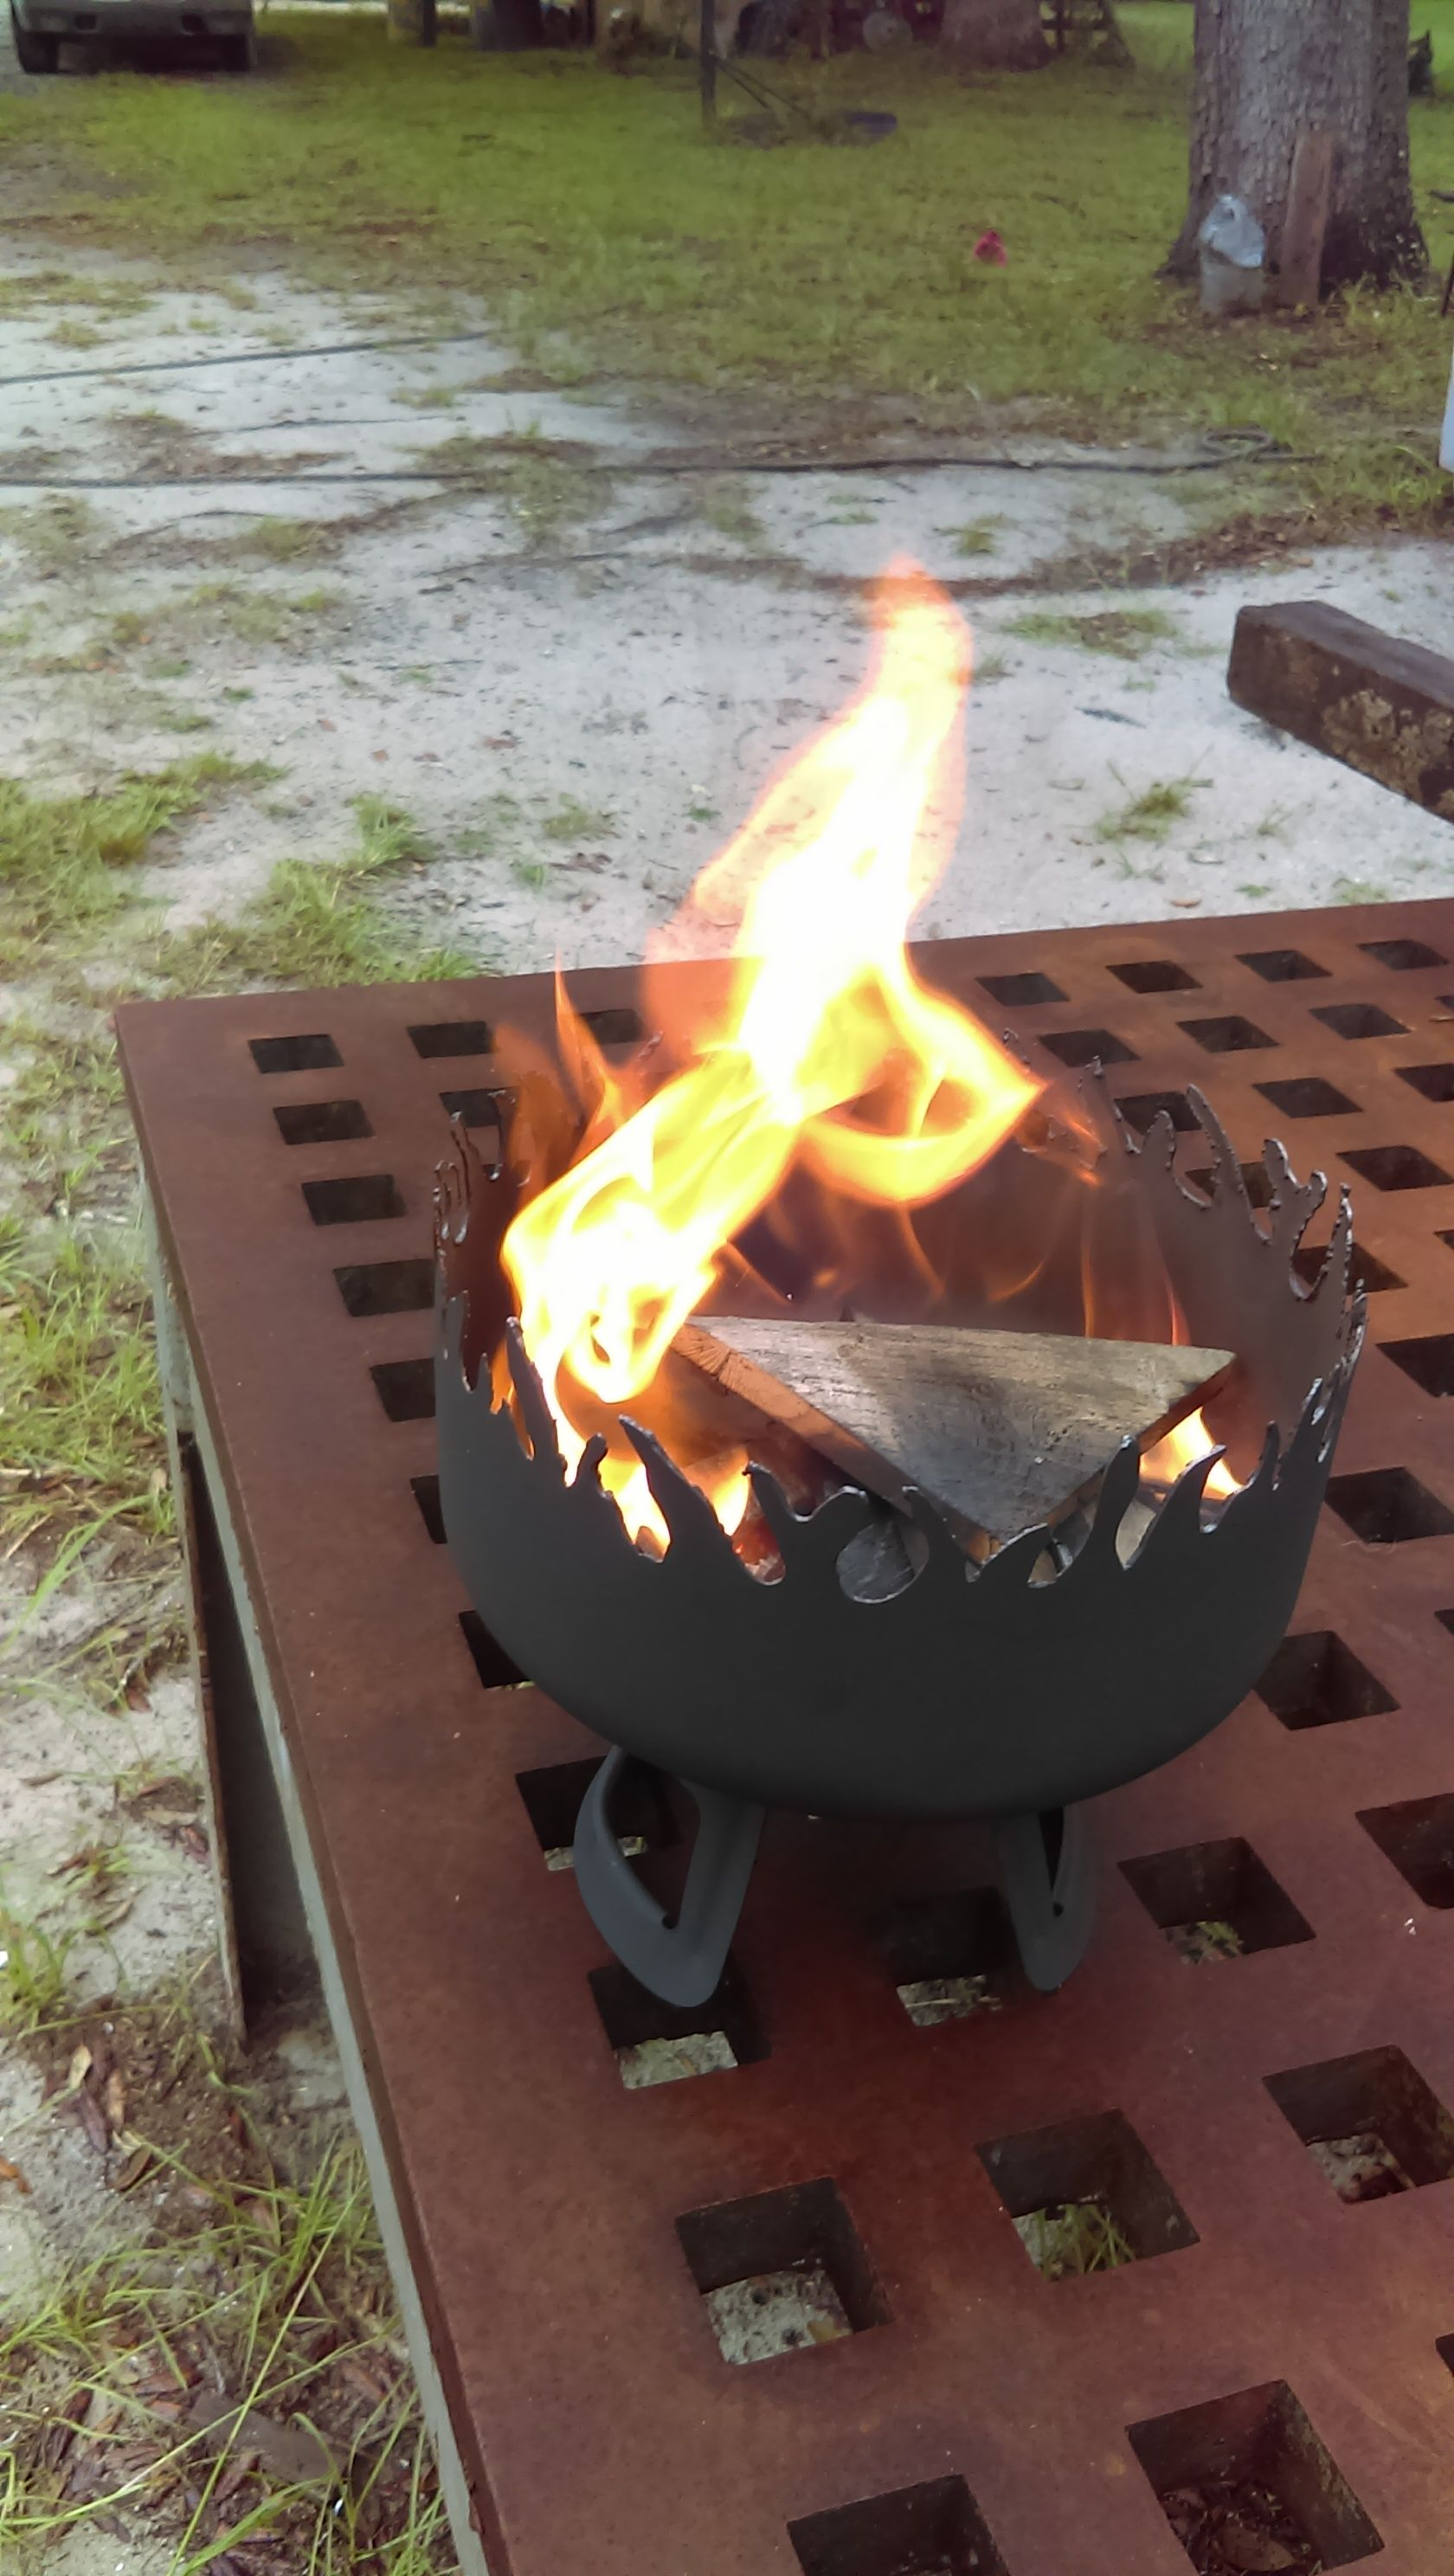 Mini Table Top Fire Pit For Roasting Marshmallows Or Hot Dogs